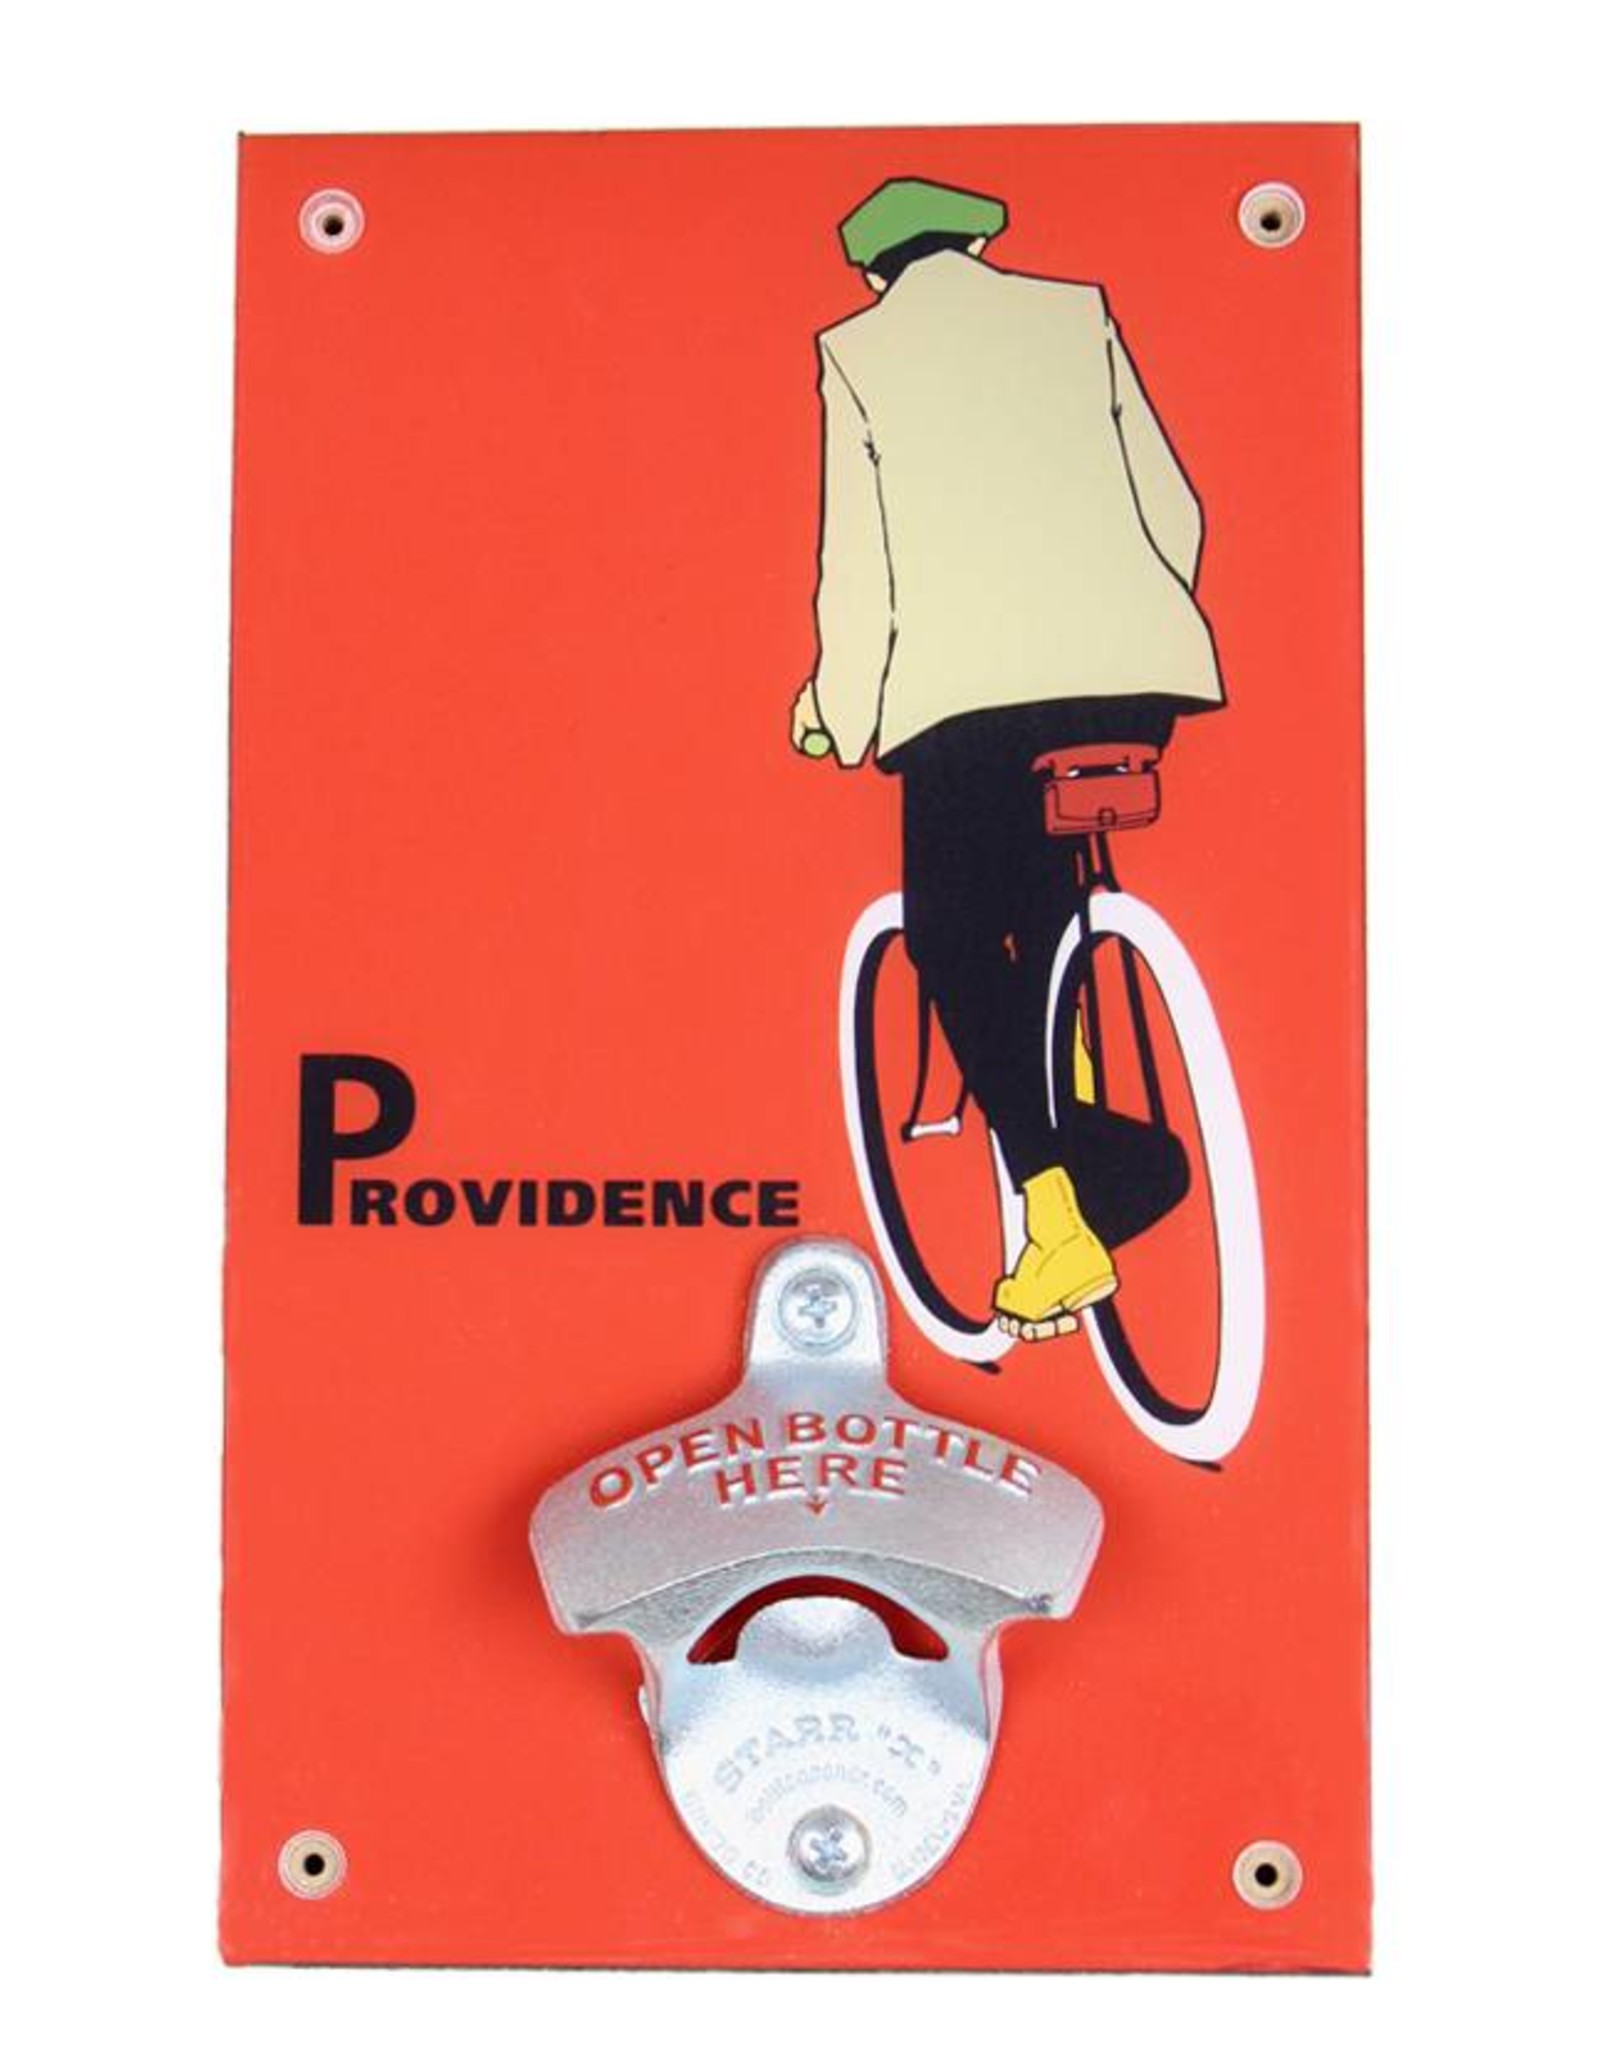 Frog & Toad Design The Providence Cyclist Bottle Opener